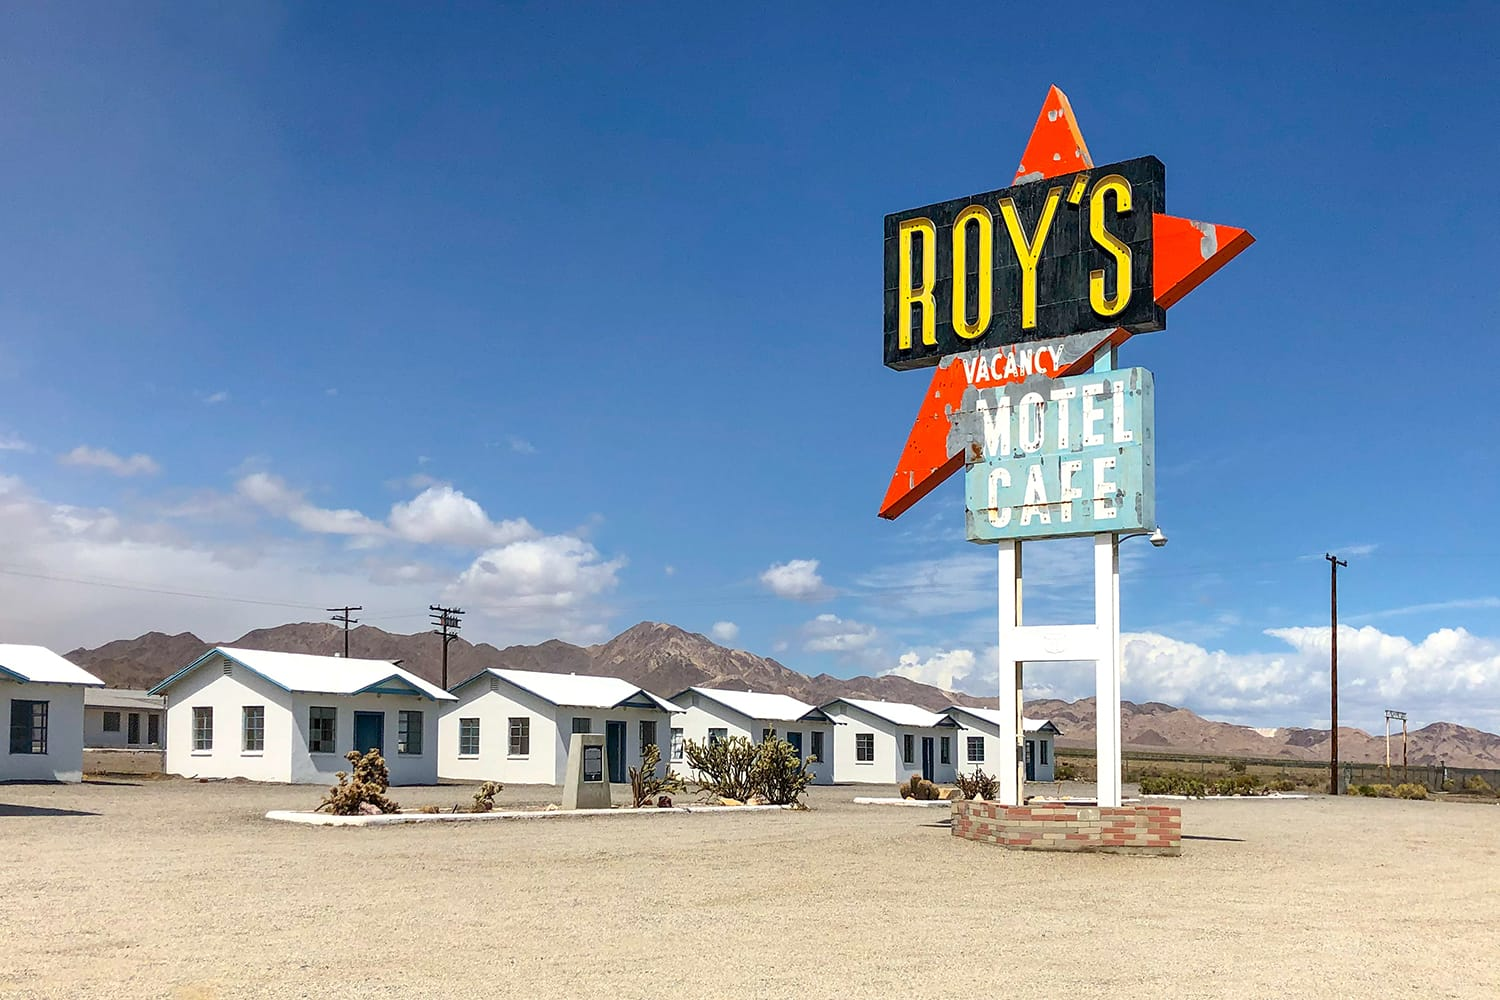 Legendary Roy's Motel and Cafe in Amboy, California, USA